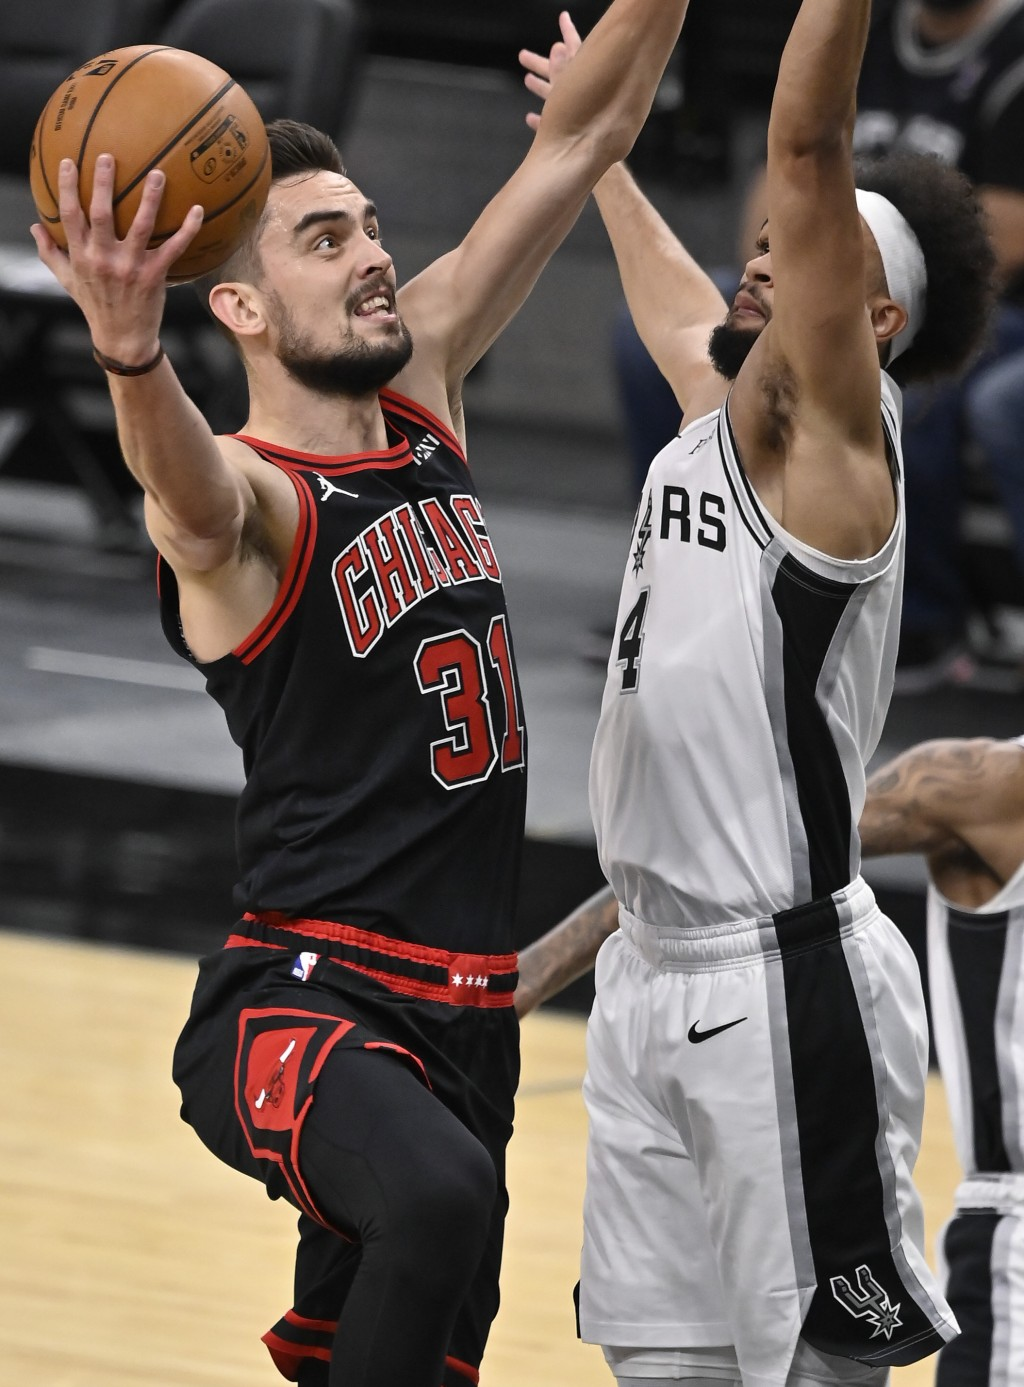 Chicago Bulls' Tomas Satoransky (31) shoots against San Antonio Spurs' Derrick White during the first half of an NBA basketball game on Saturday, Marc...